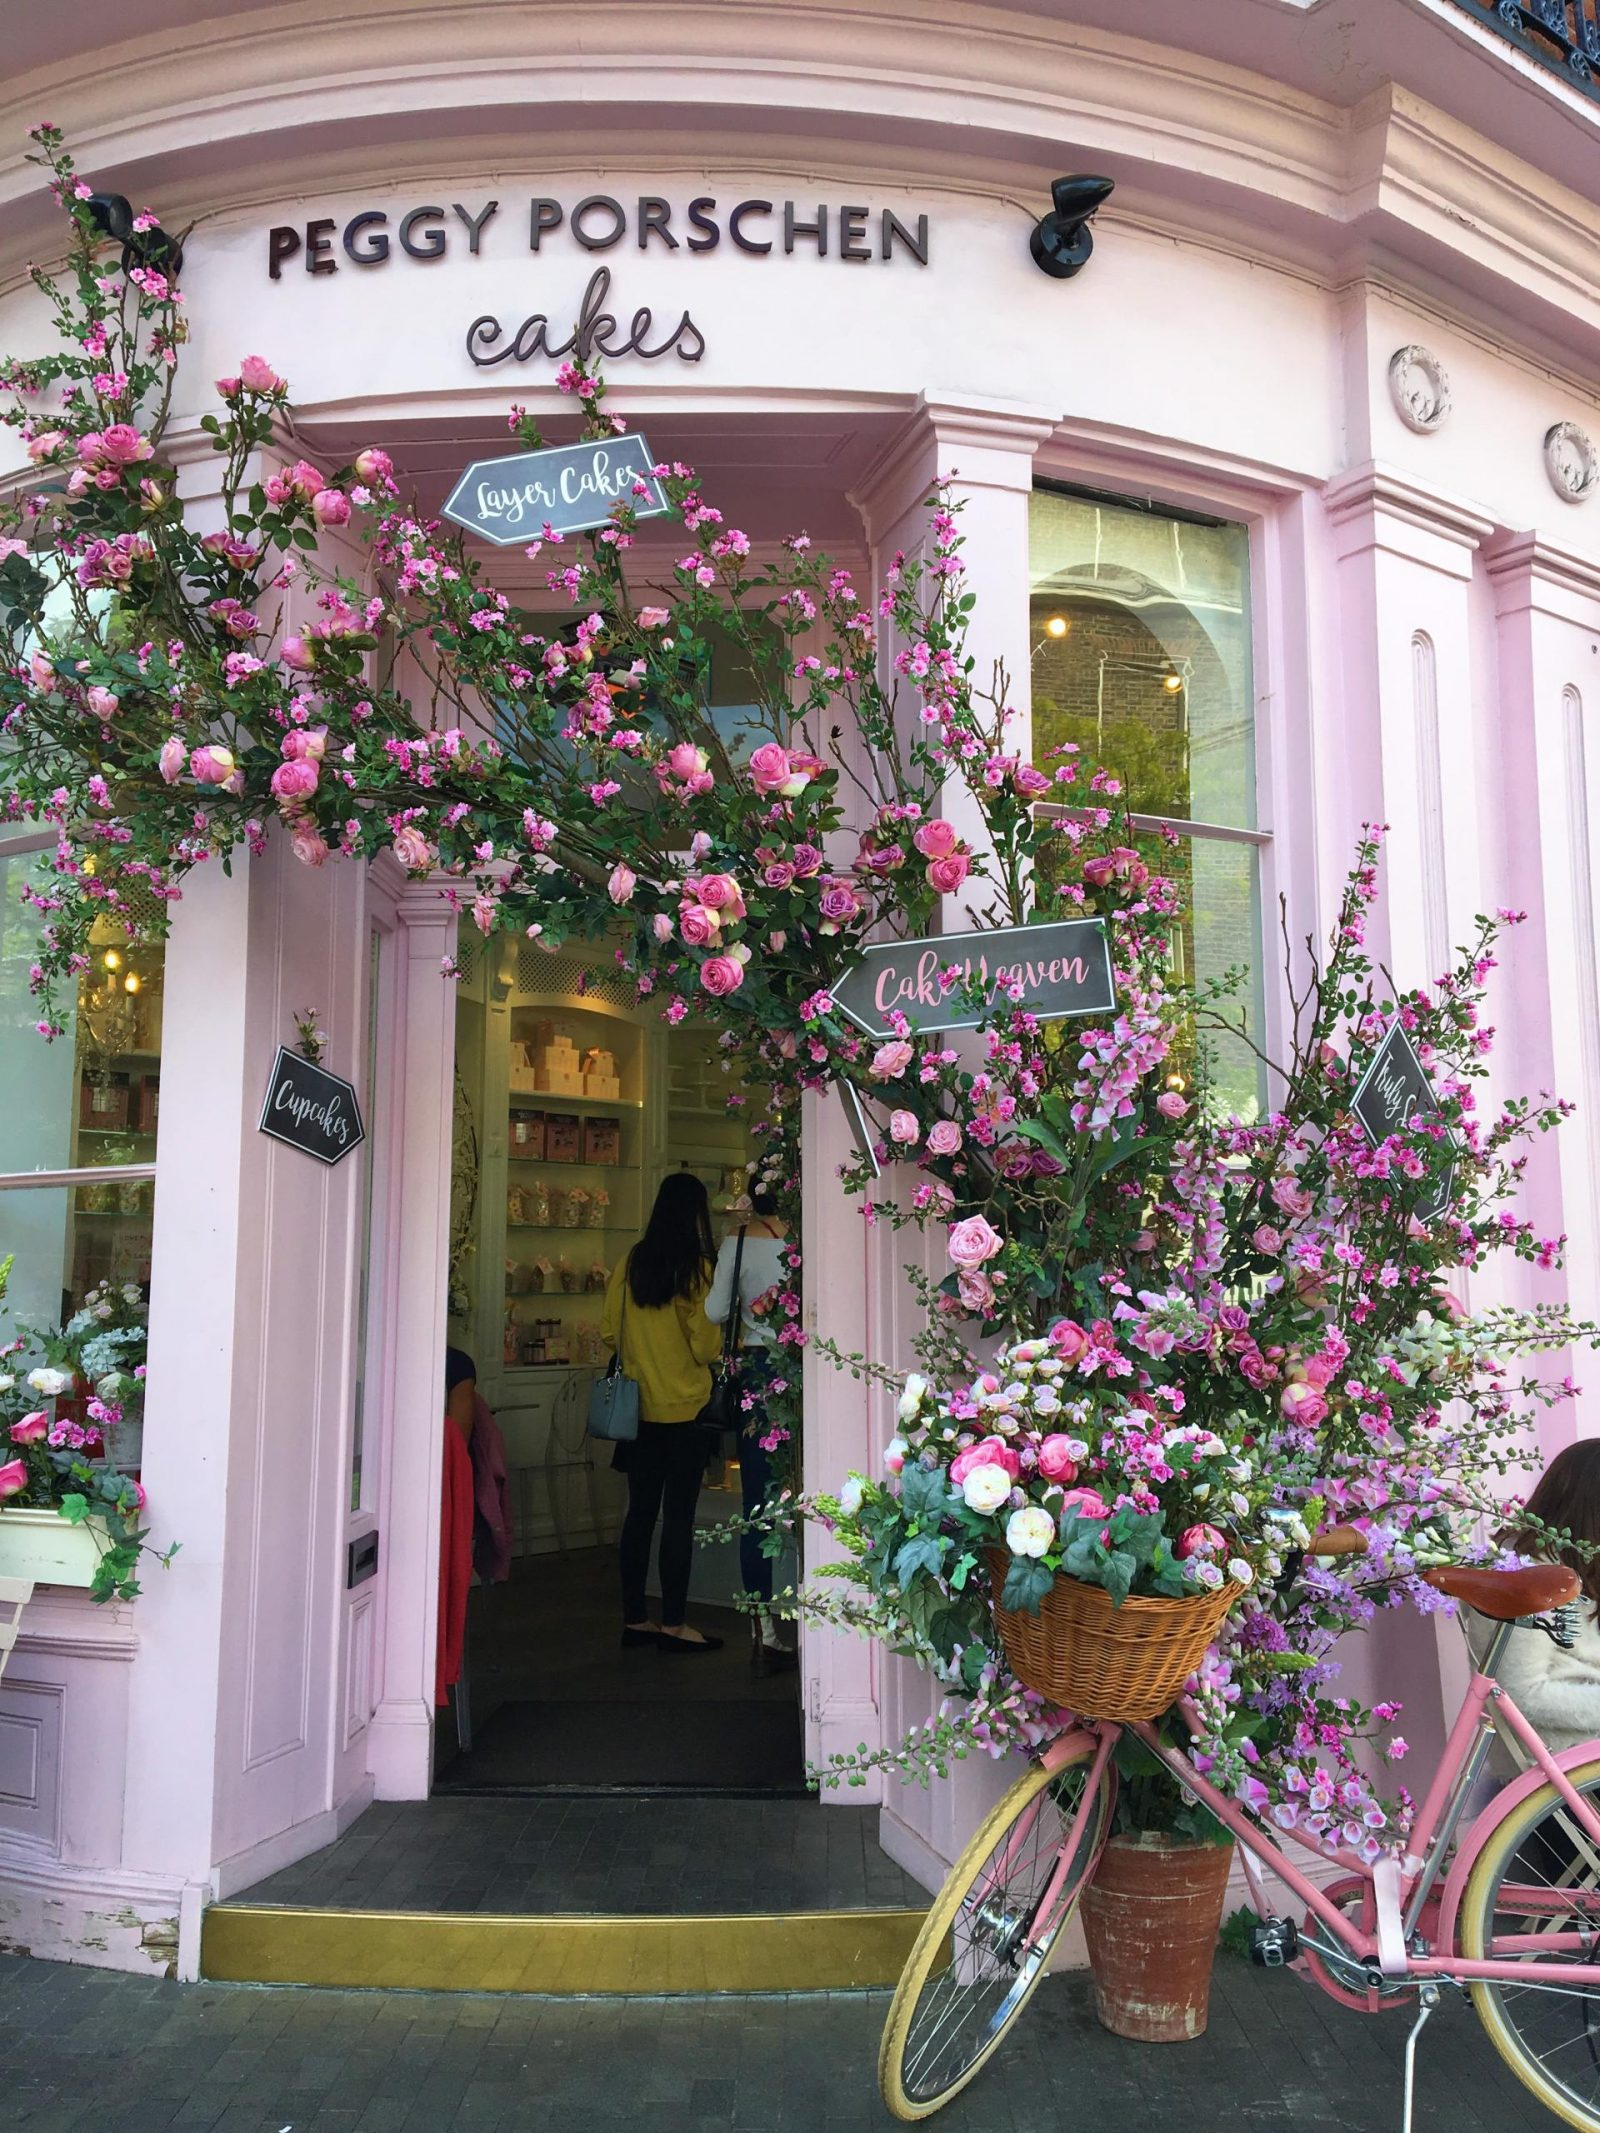 London Trips And Peggy Porschen Love India Moon